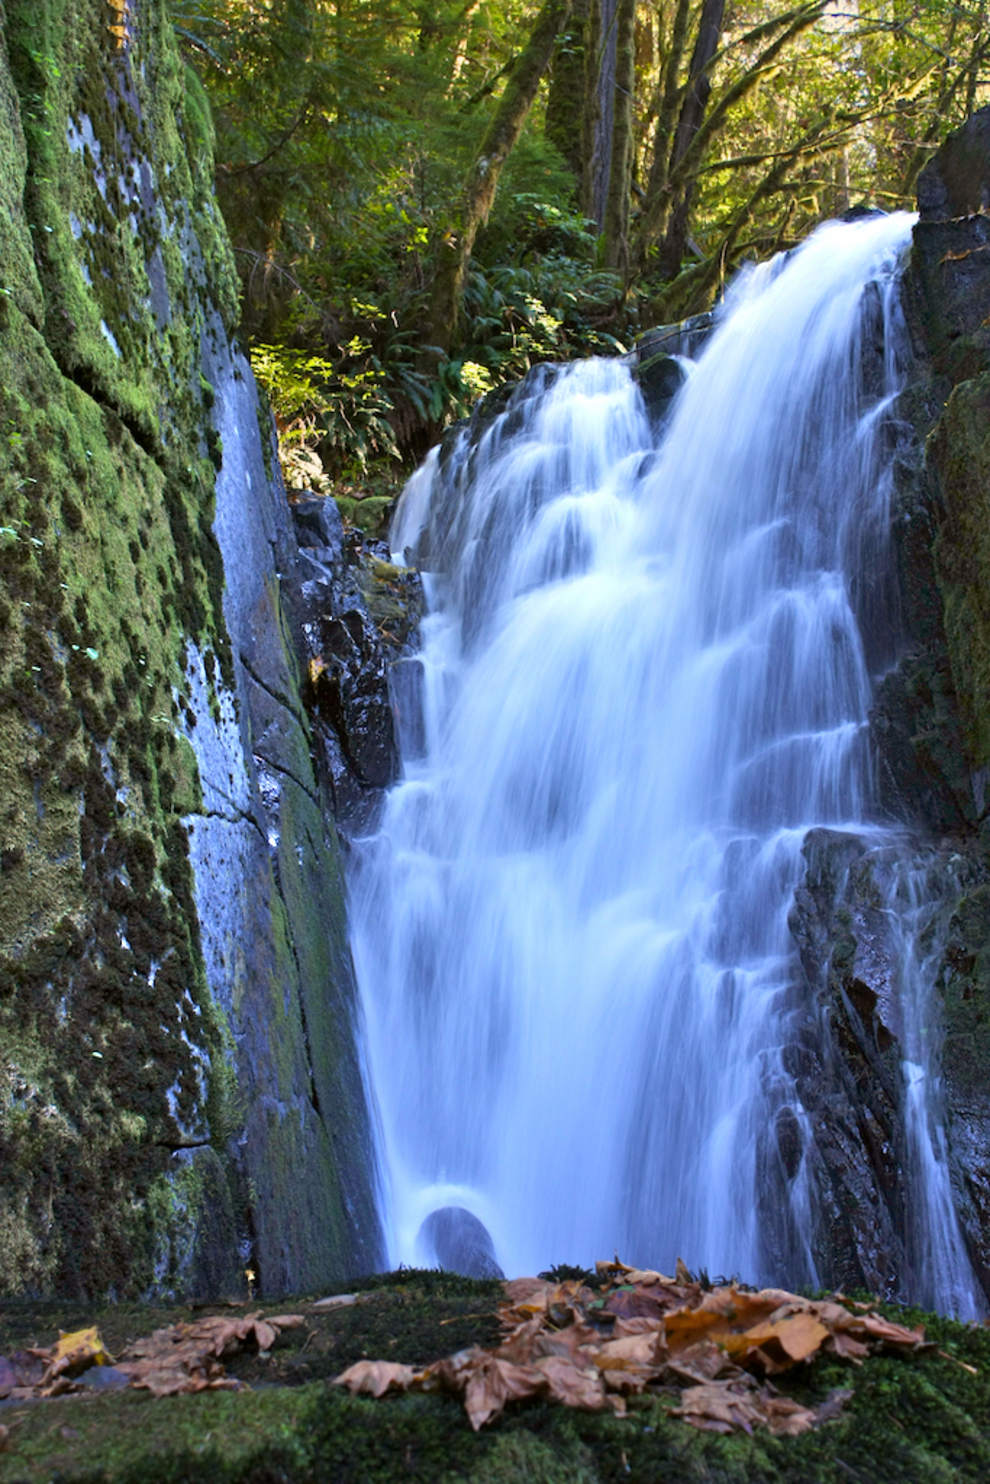 The 20-foot tiered falls are moments from the parking area at Alsea Falls Recreation Site; a 1.2-mile loop trail reaches the nearby campground. Green Peak Falls is 2.8-mile round trip from here. (Collin Andrew/The Register-Guard)